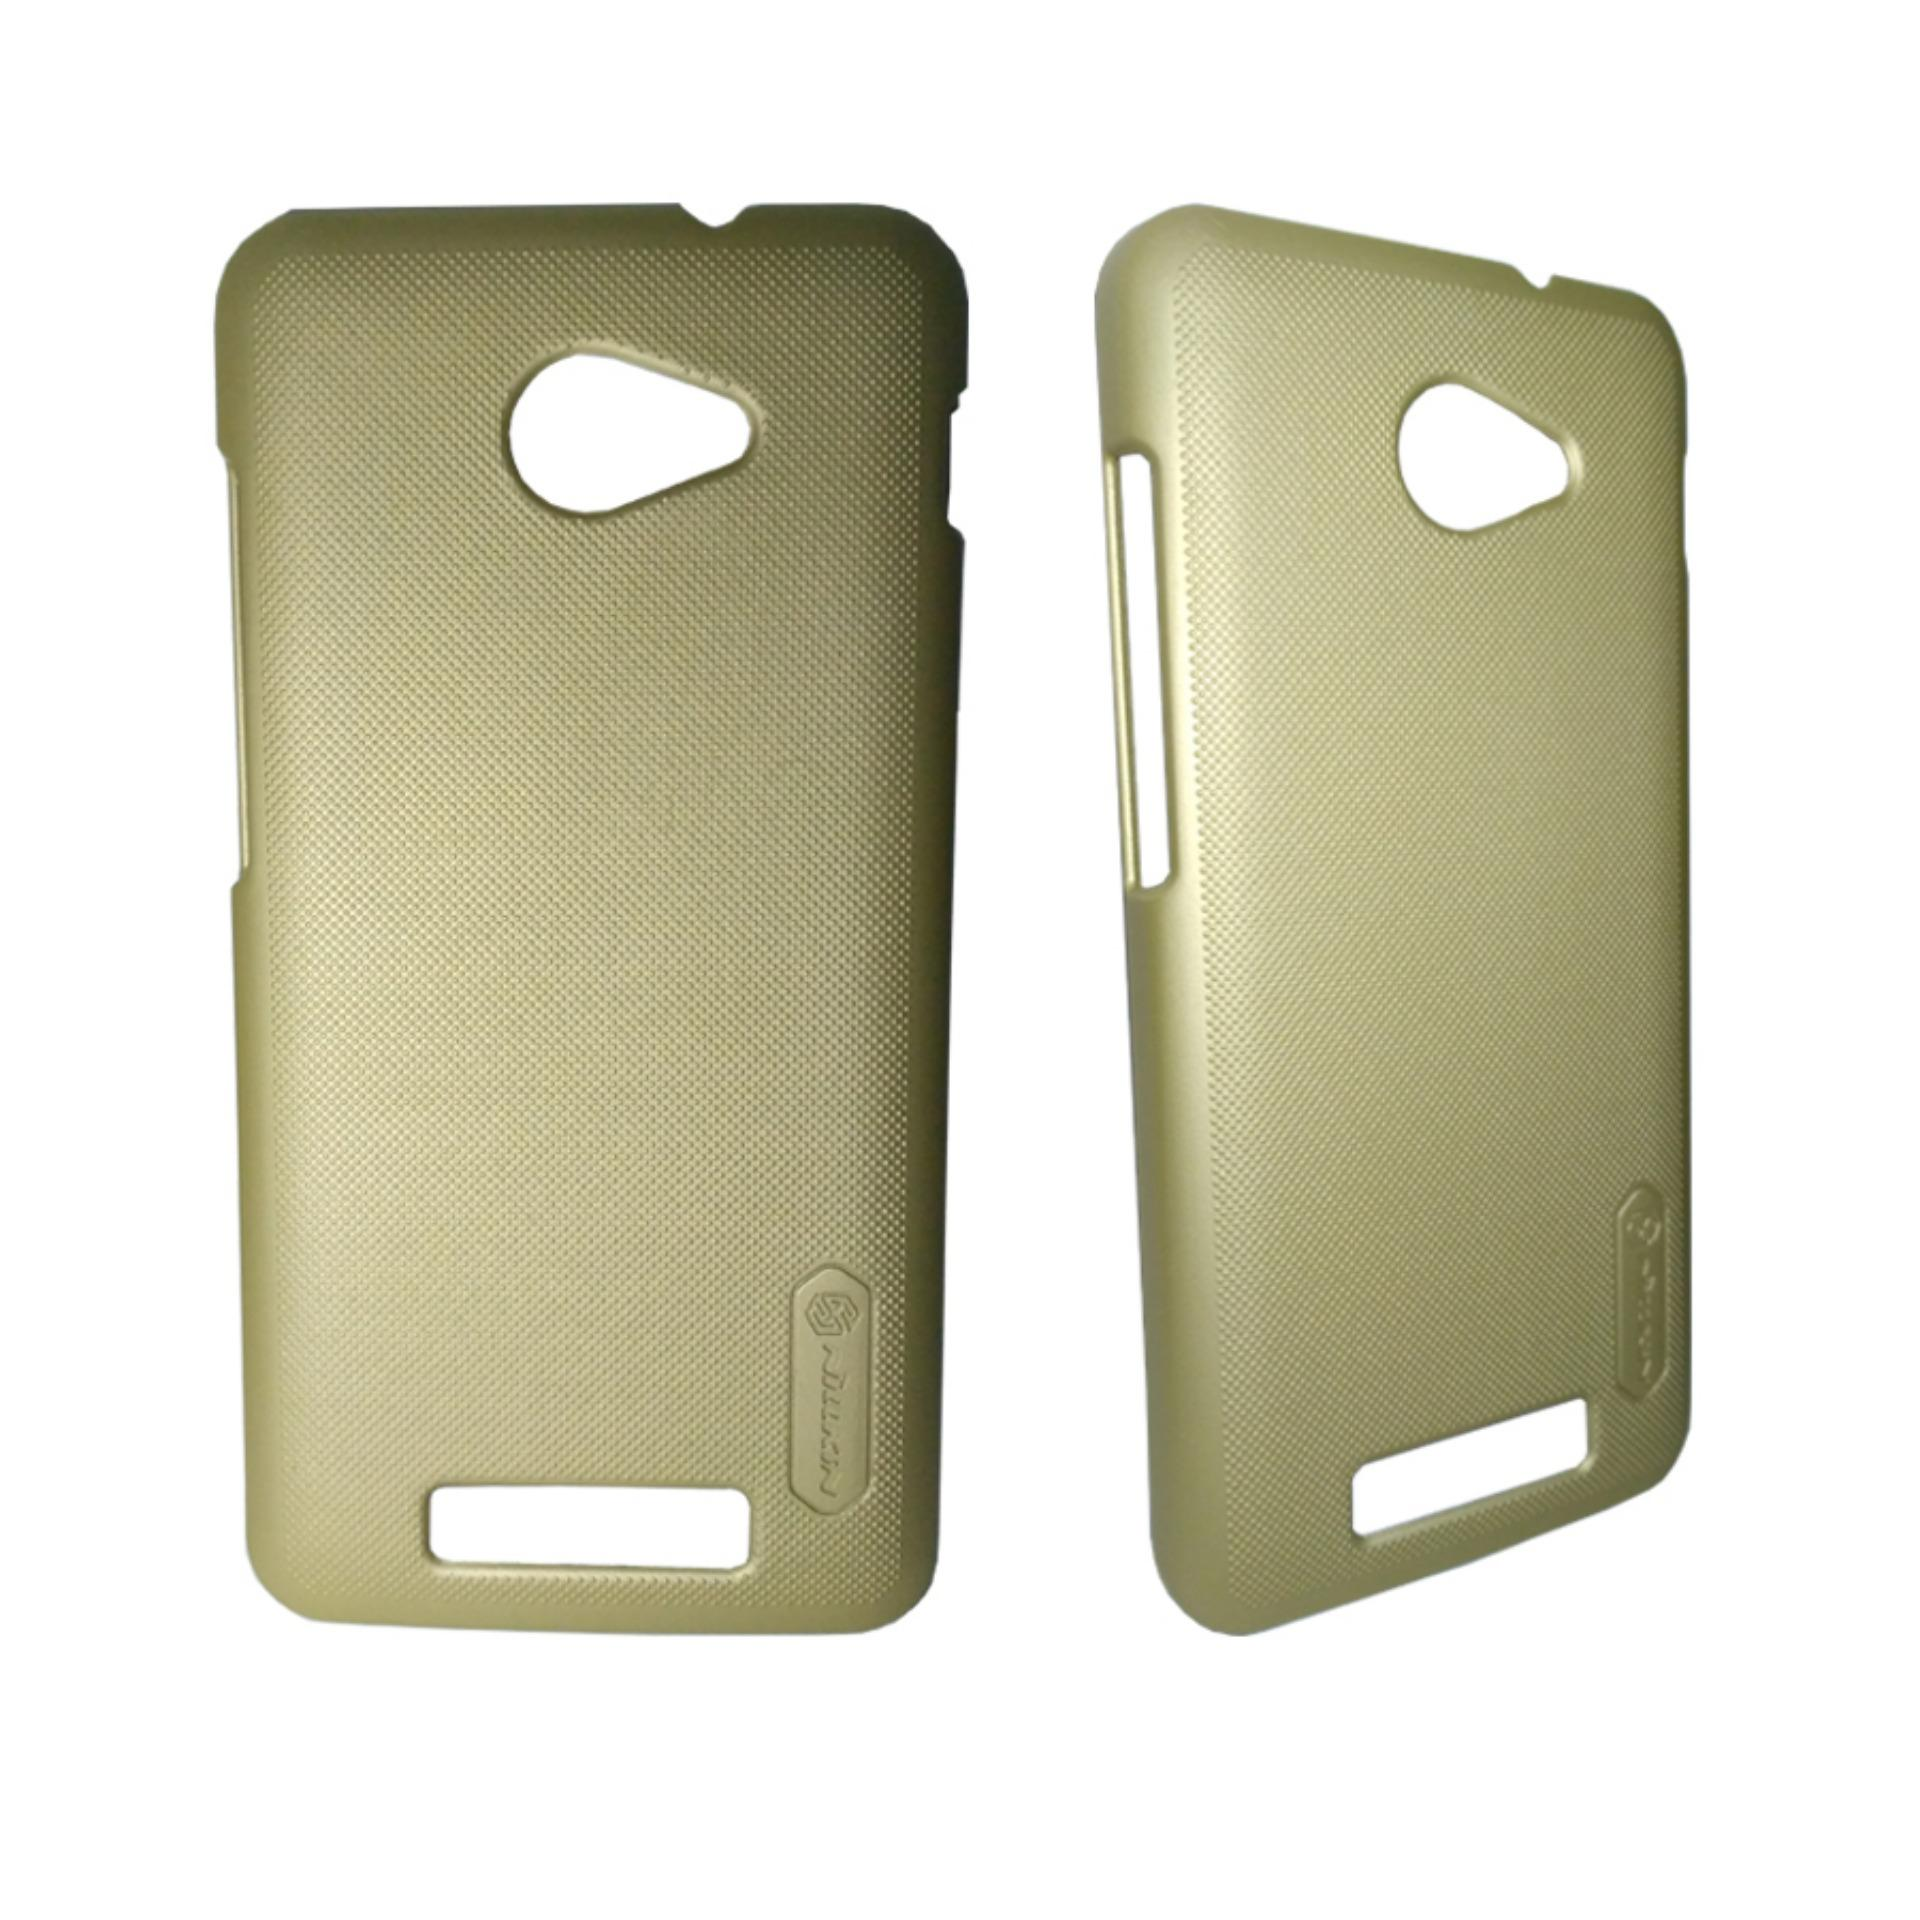 Promo Spesial Nillkin Frosted Shield Hardcase For Smartfren Andromax A Gold